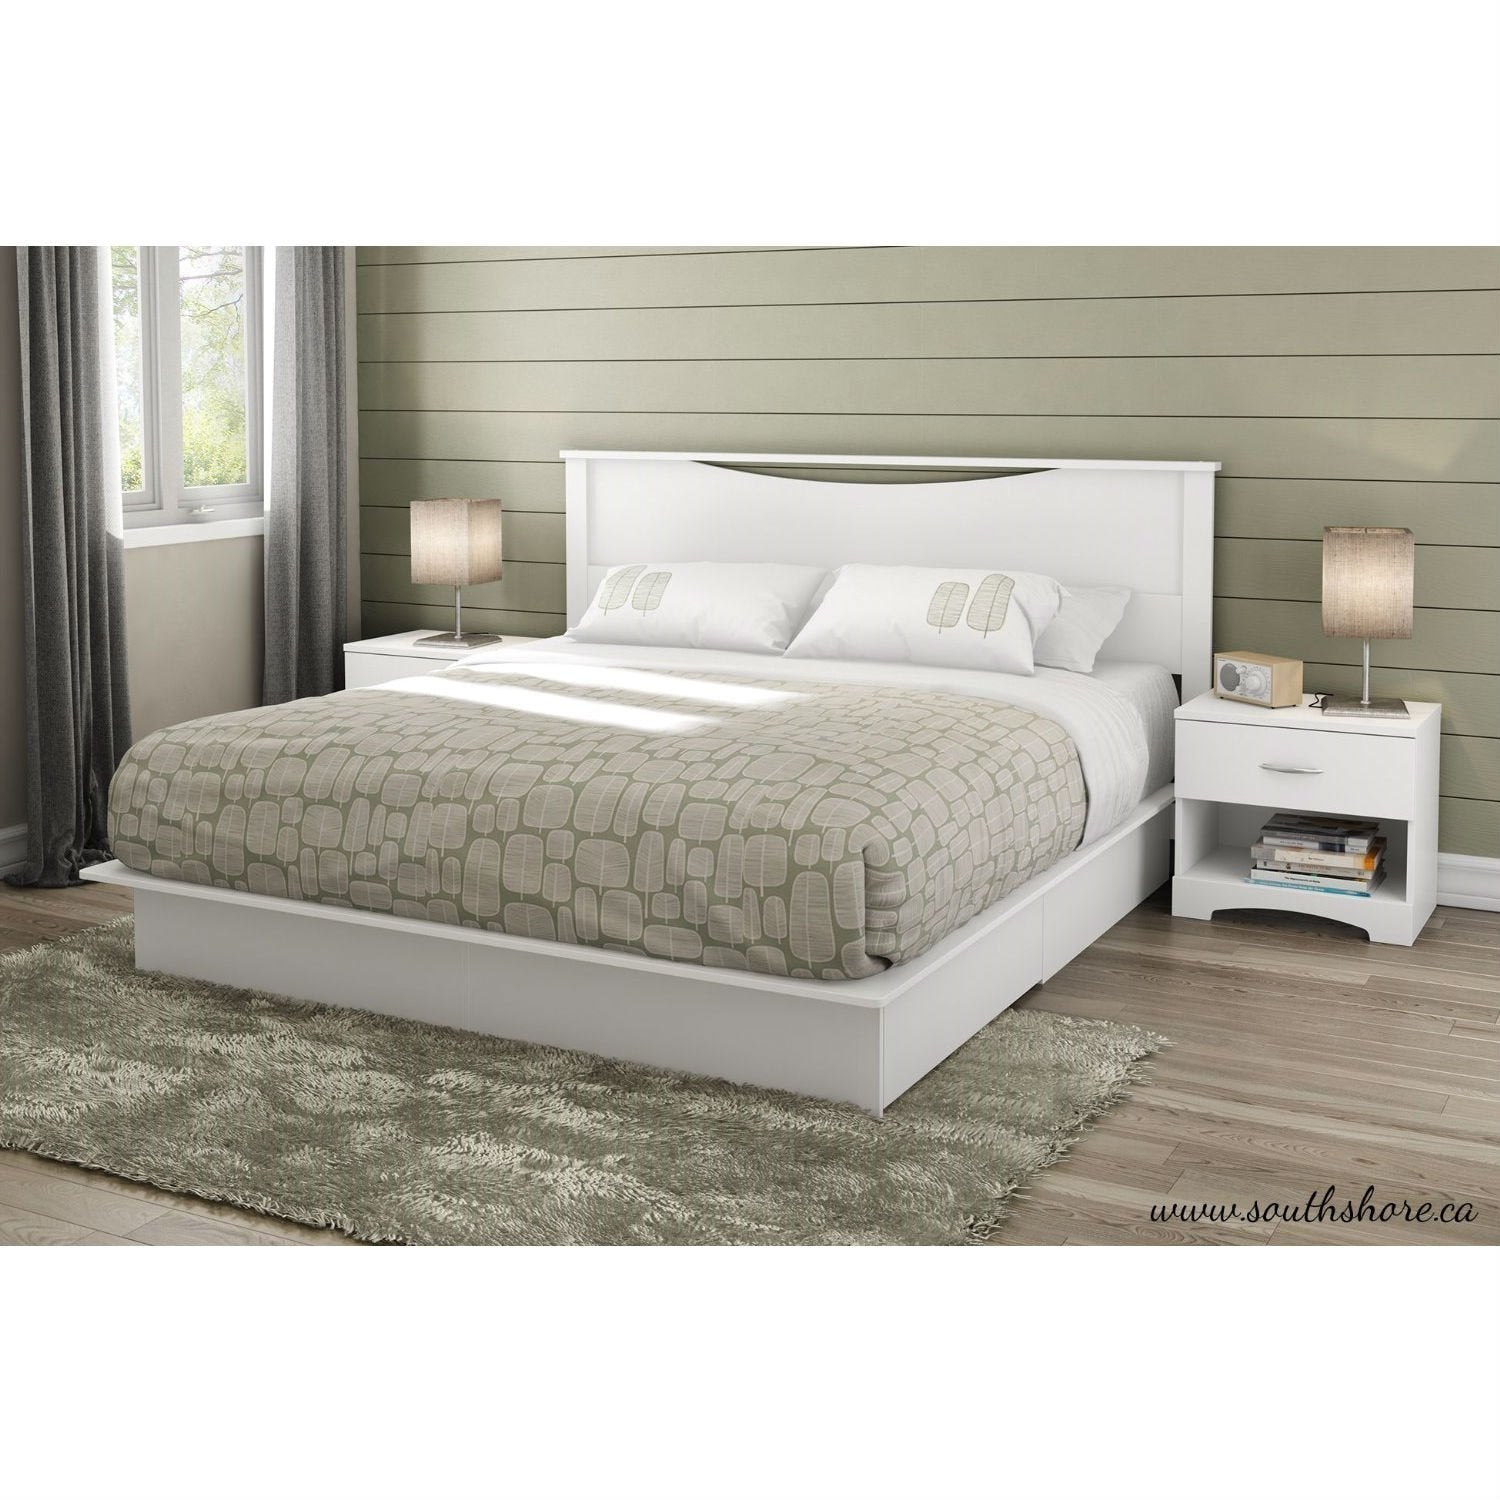 Arianwen Platform Bed King size.